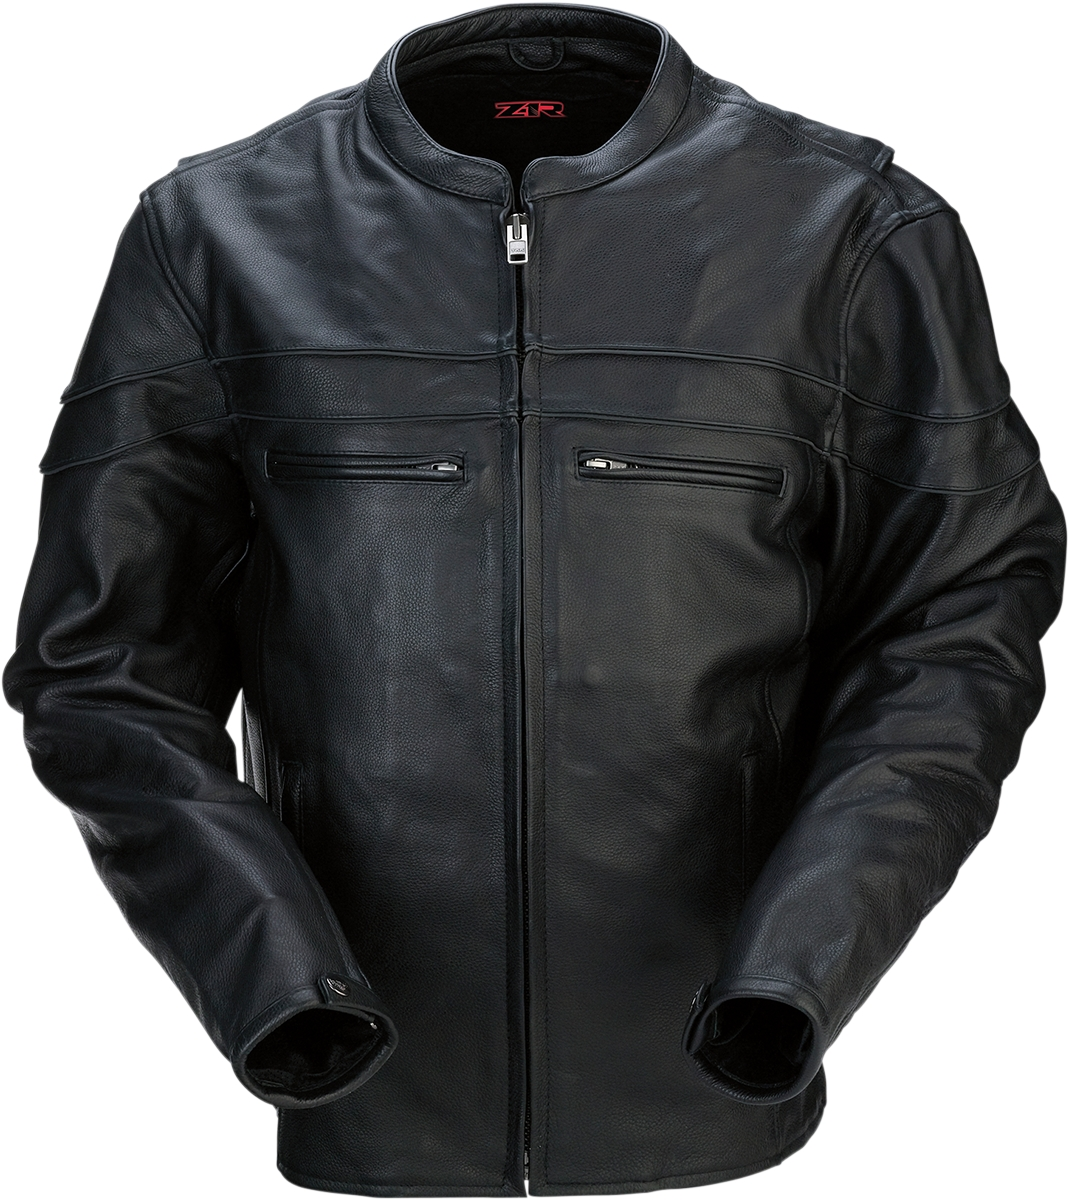 Z1R 45 Leather Jacket